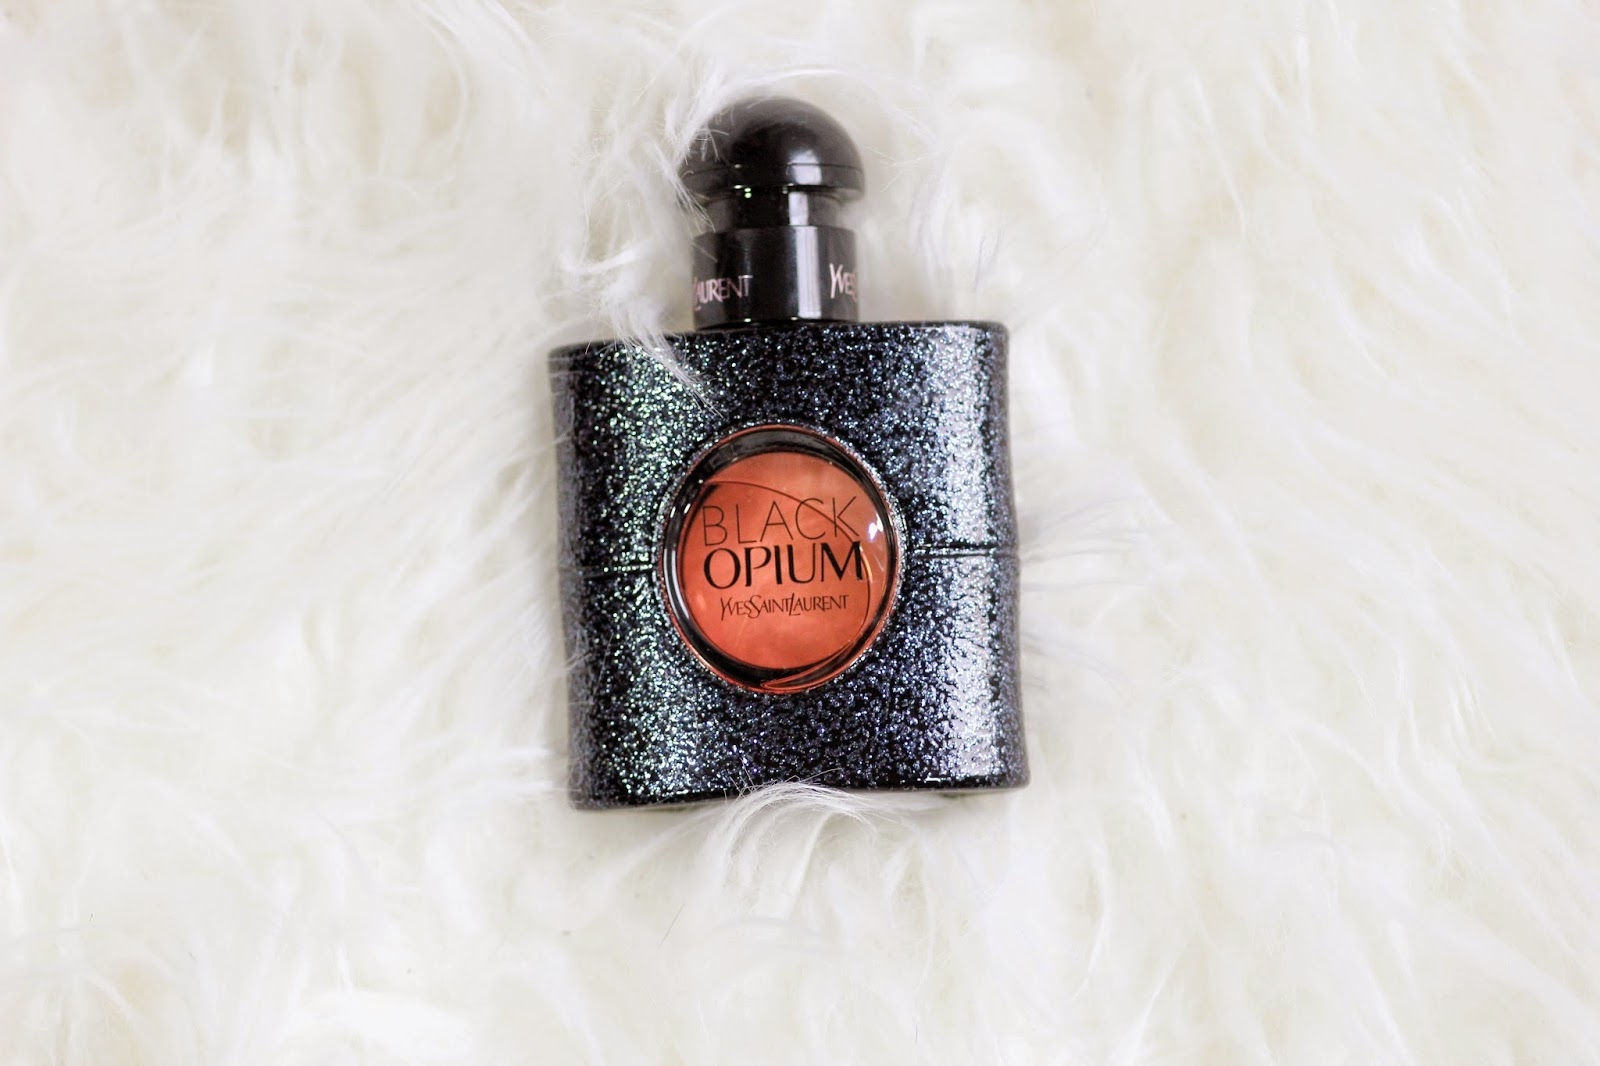 PERFUME: YVES SAINT LAURENT BLACK OPIUM PRIZMAHFASHION